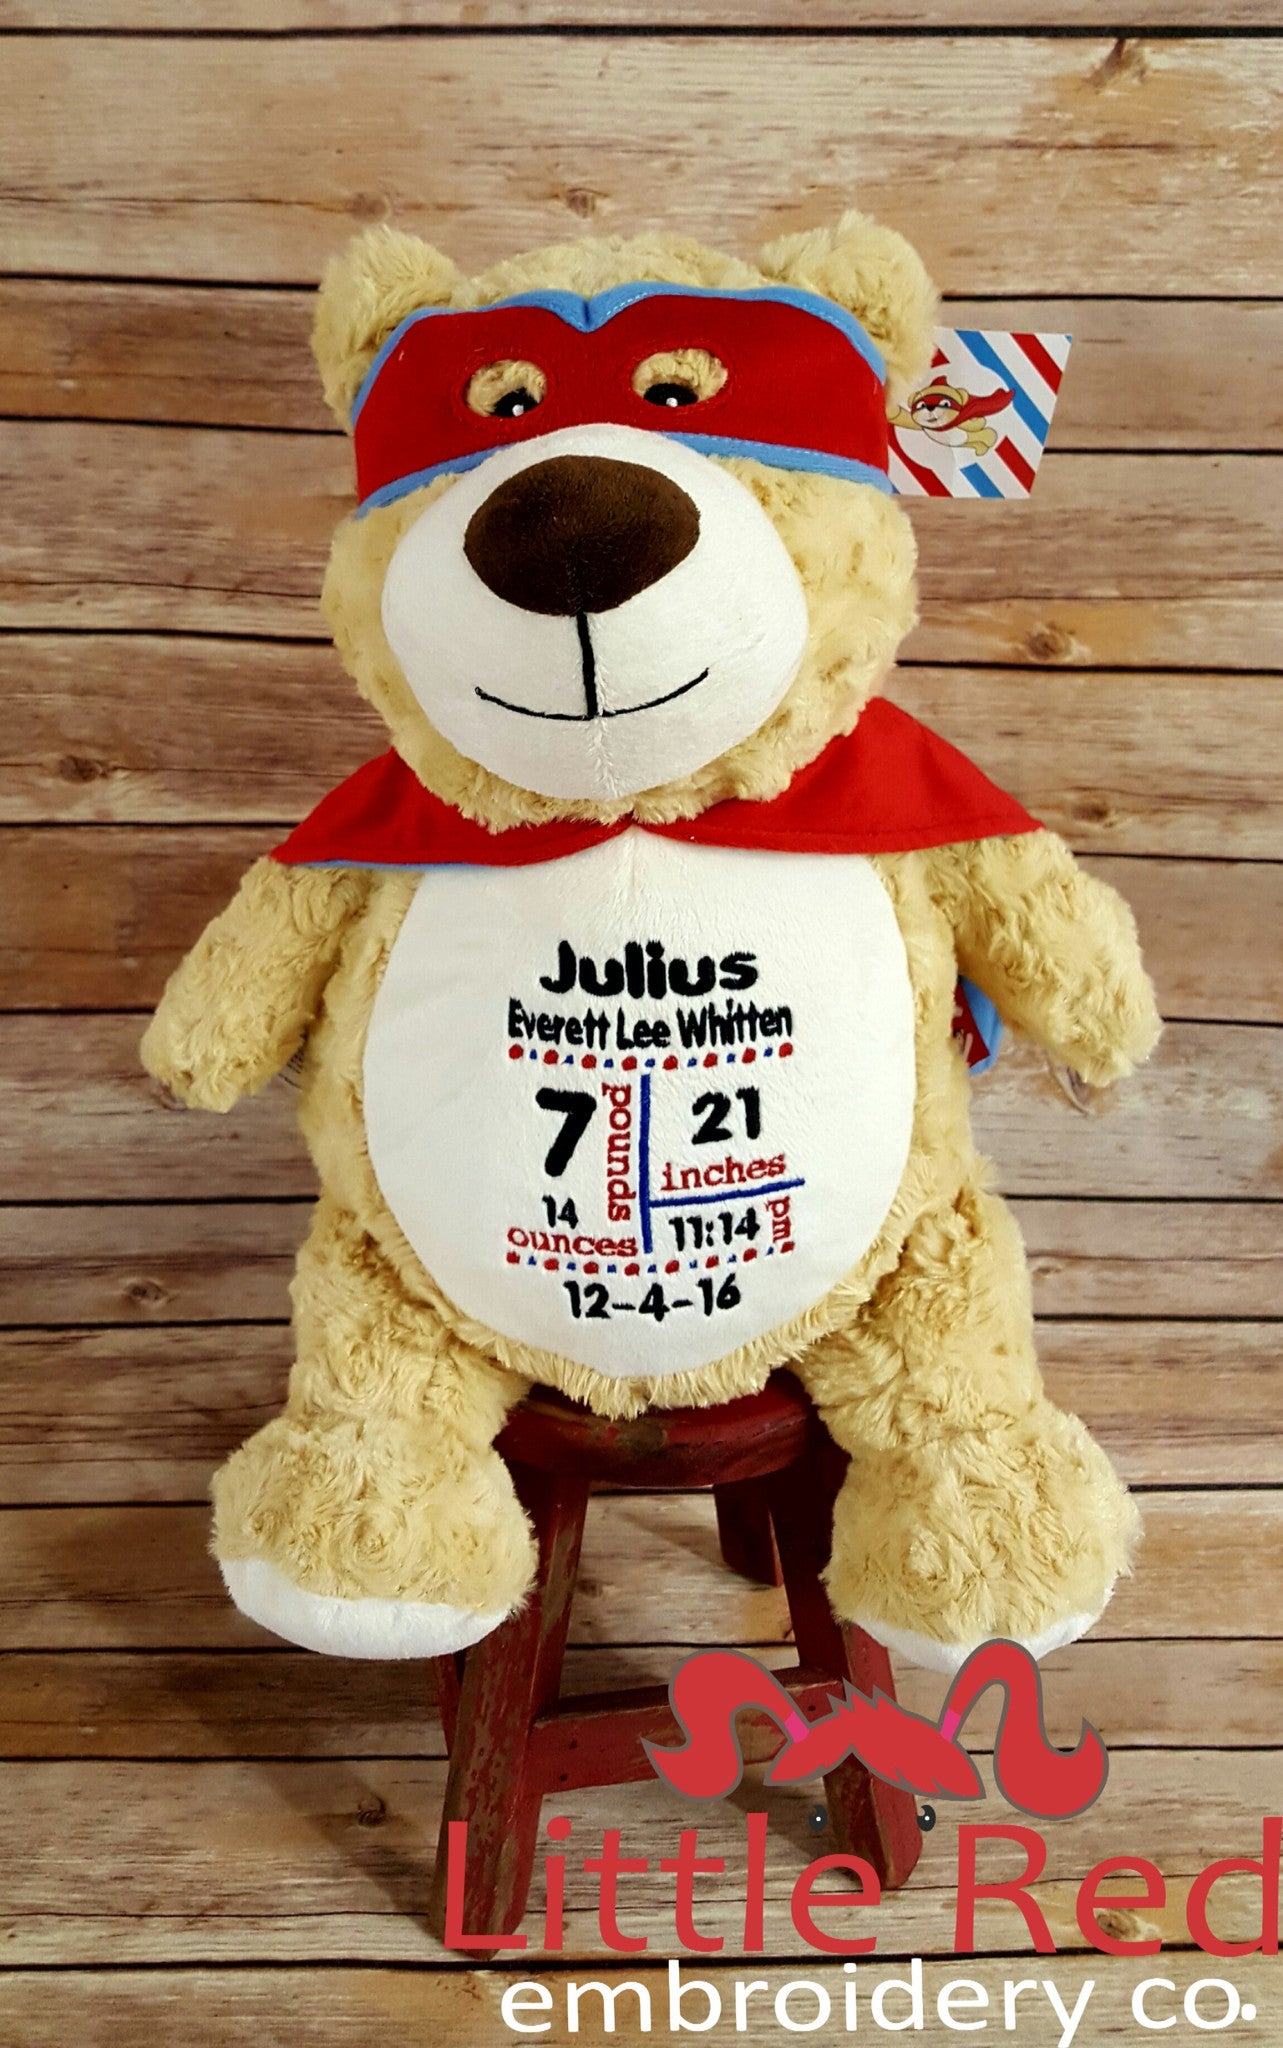 Cubbies™ Hero Bear Stuffie with Custom Embroidery